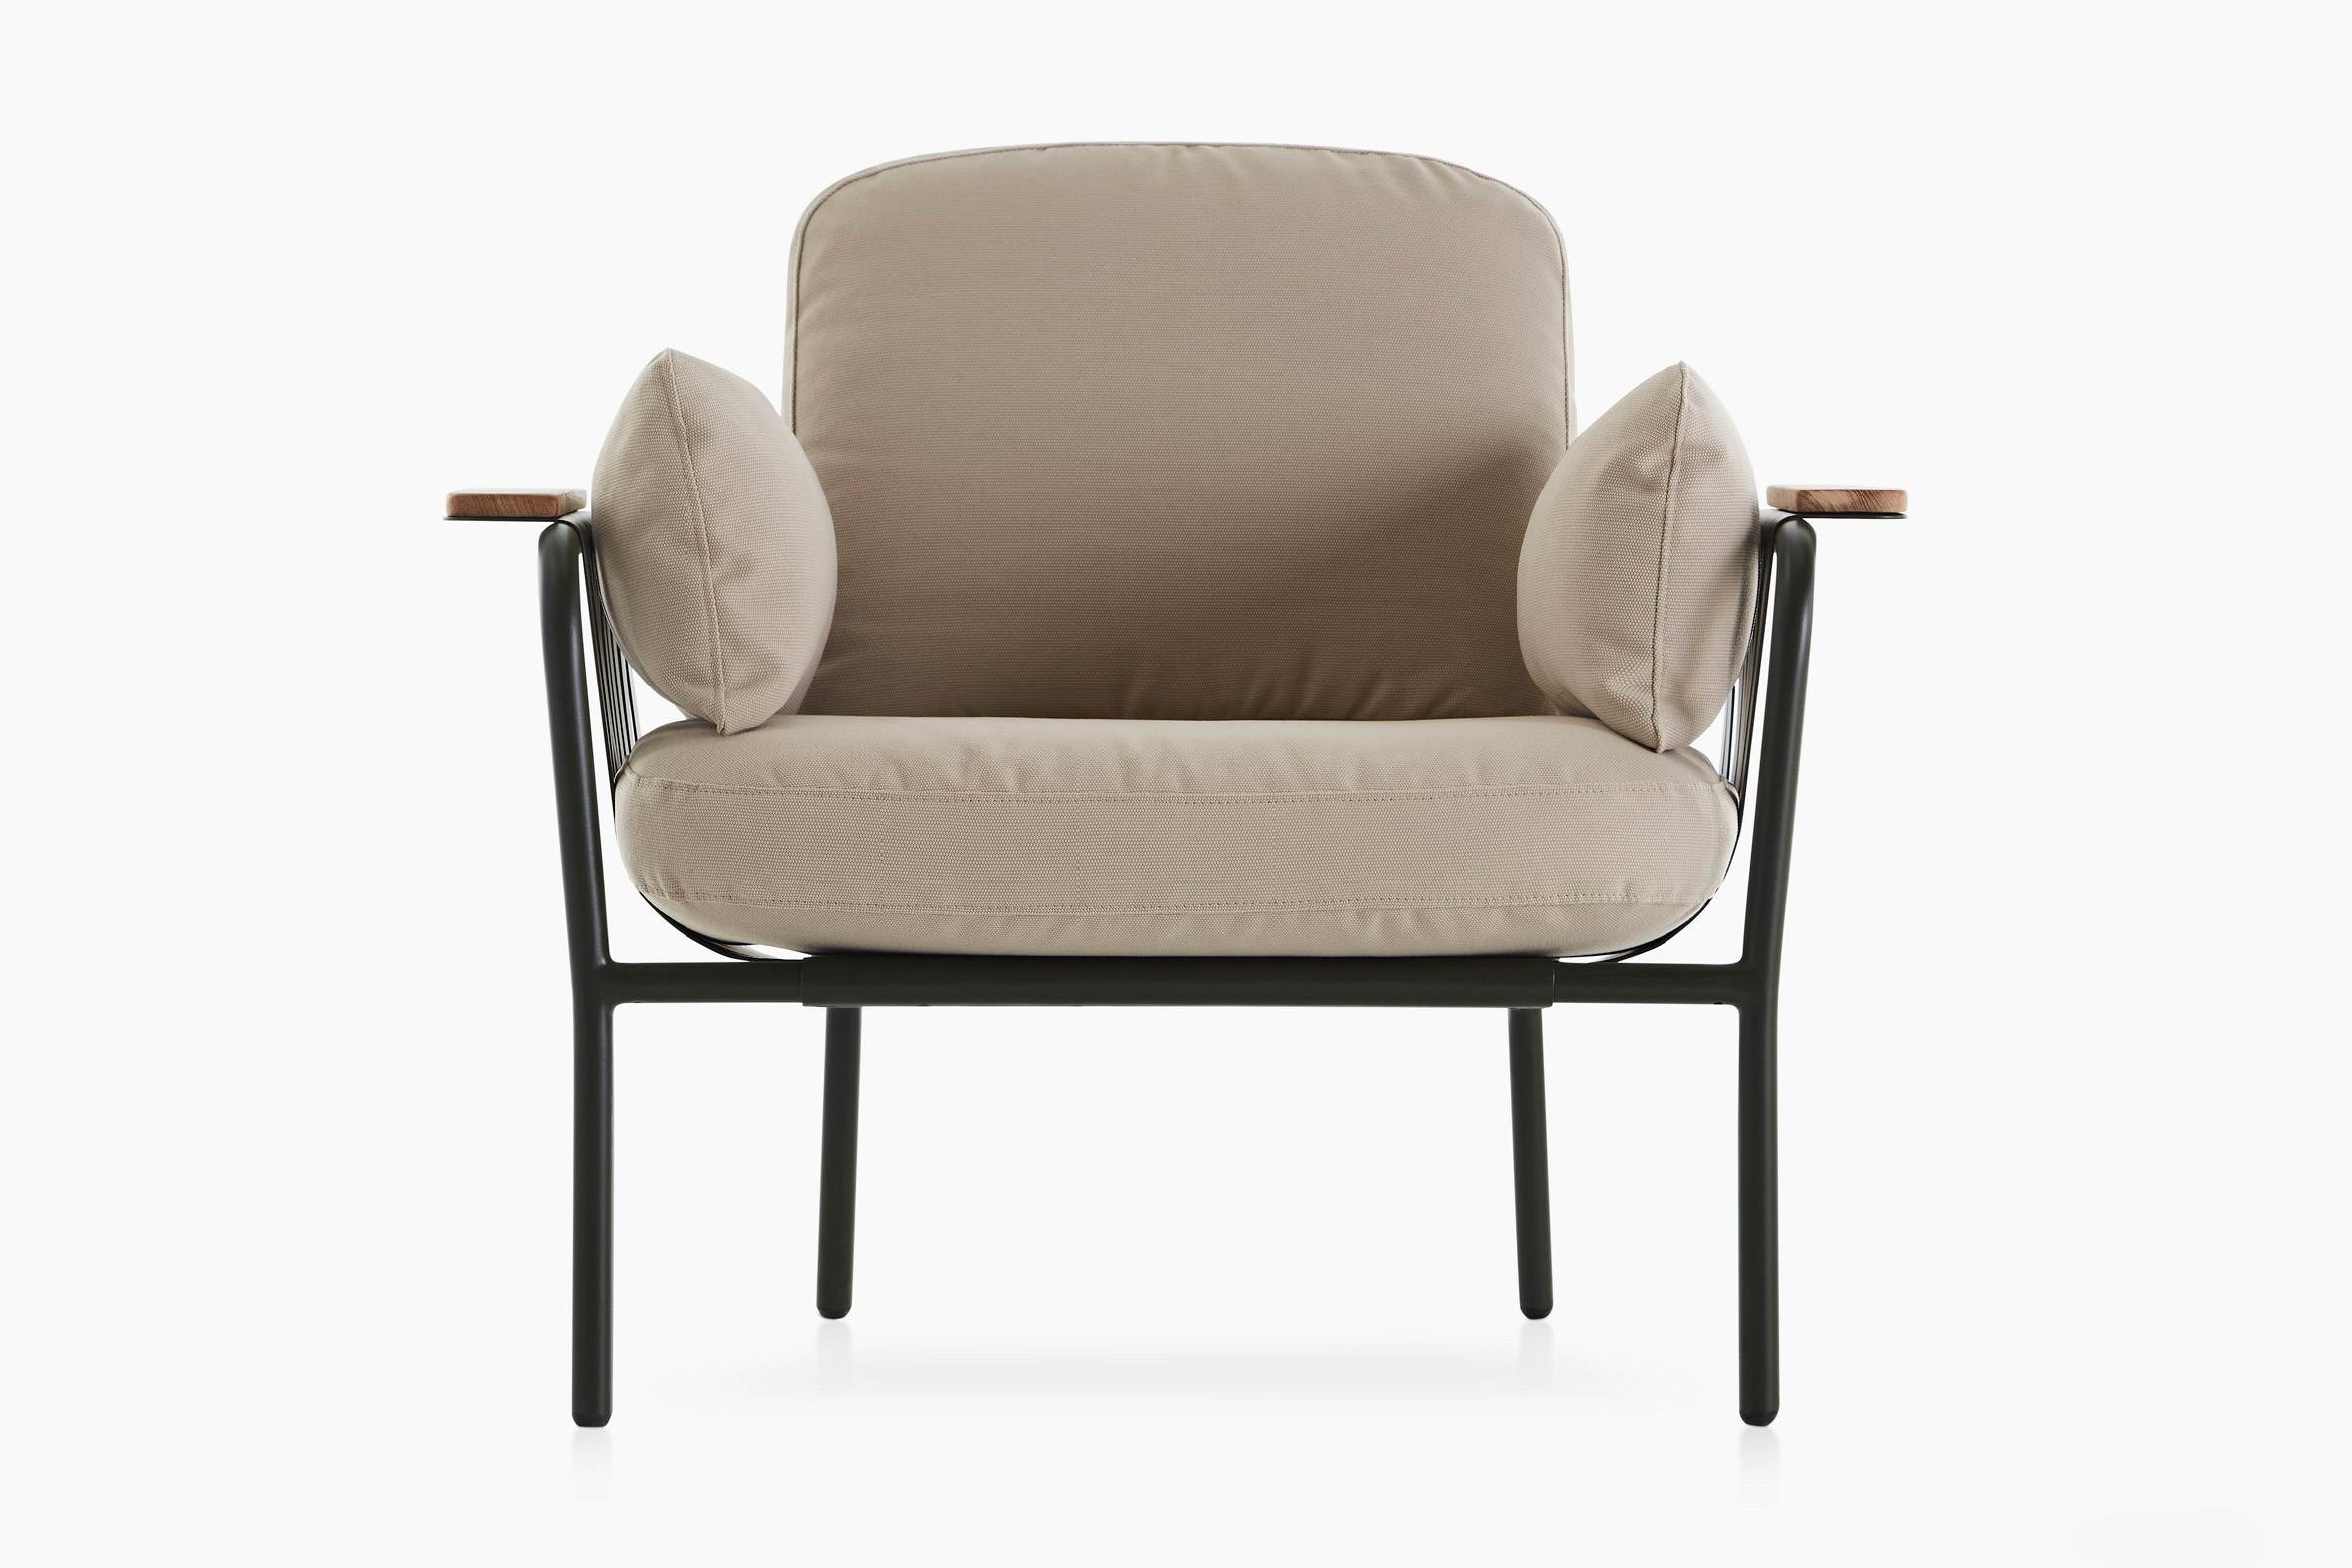 A cushioned outdoor armchair by Søren Rose for Gandiablasco